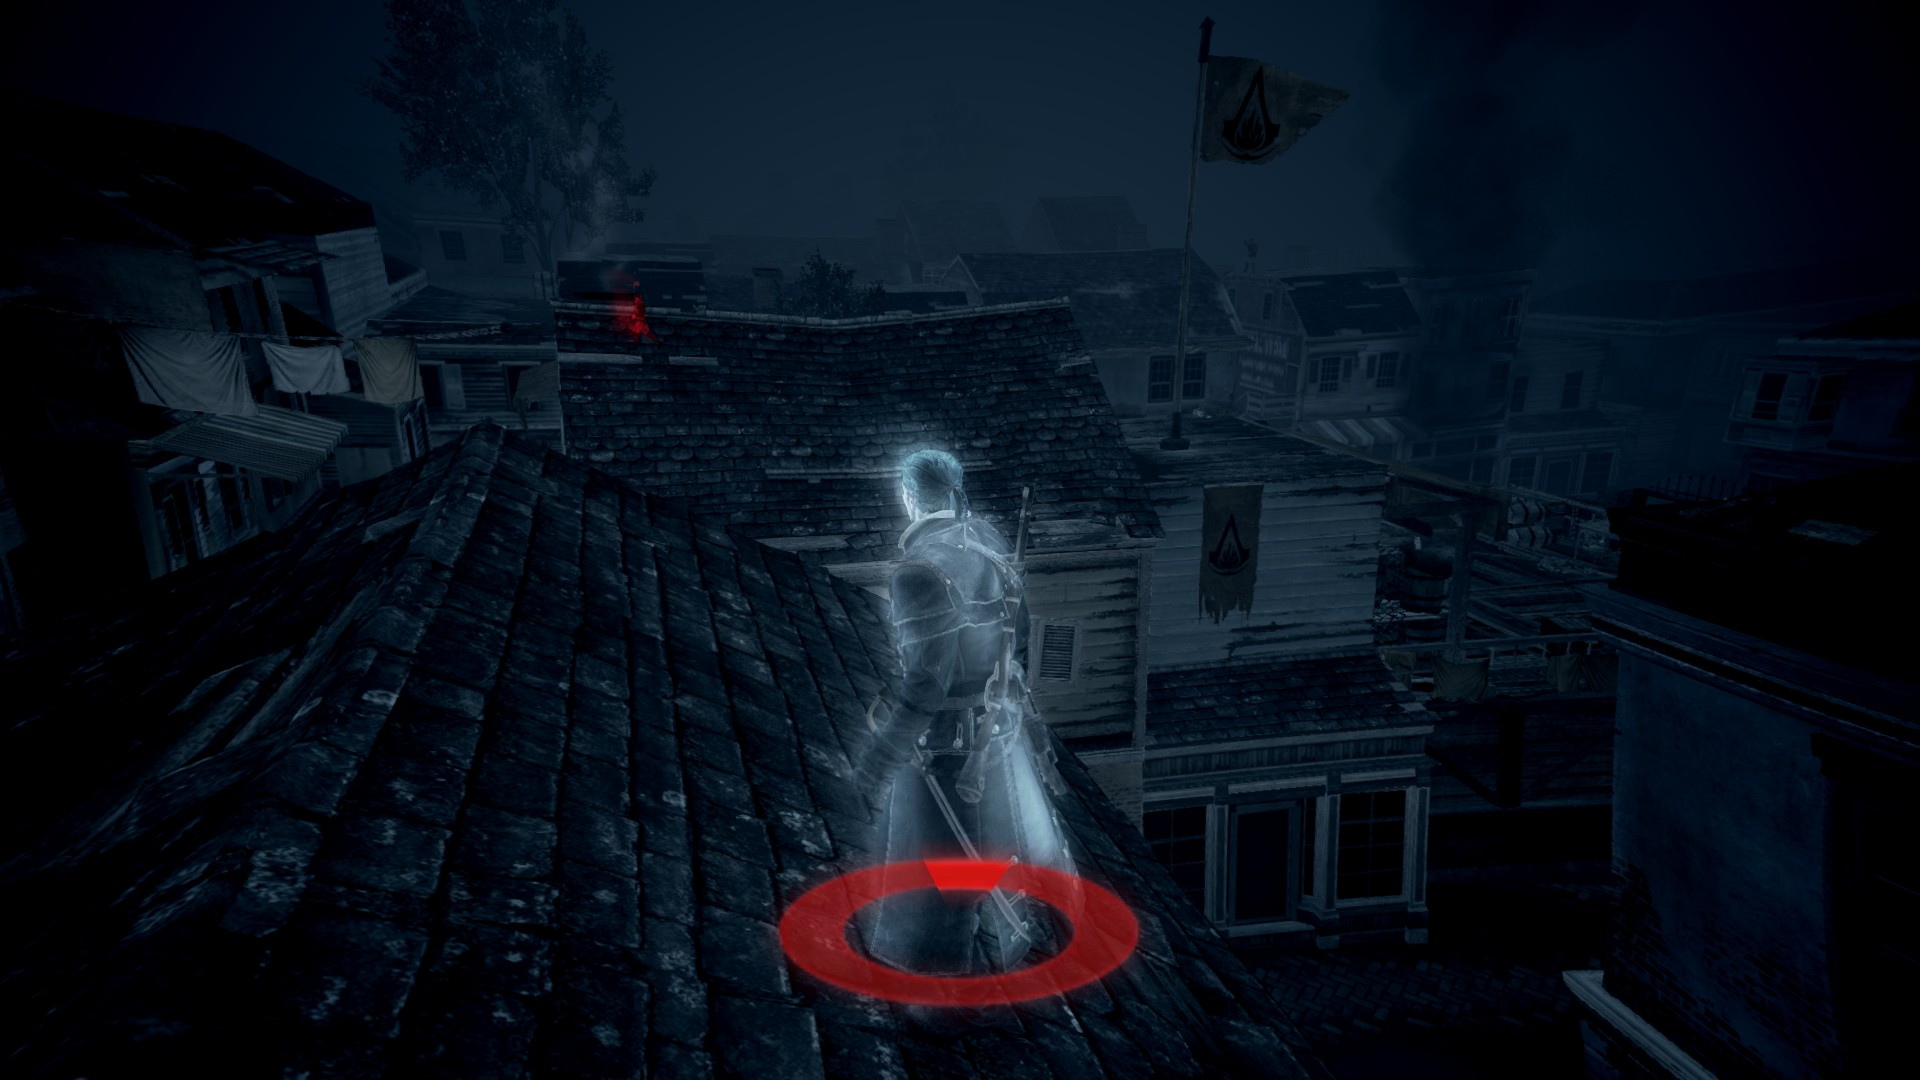 The circle at the bottom would show how close a stalker is.